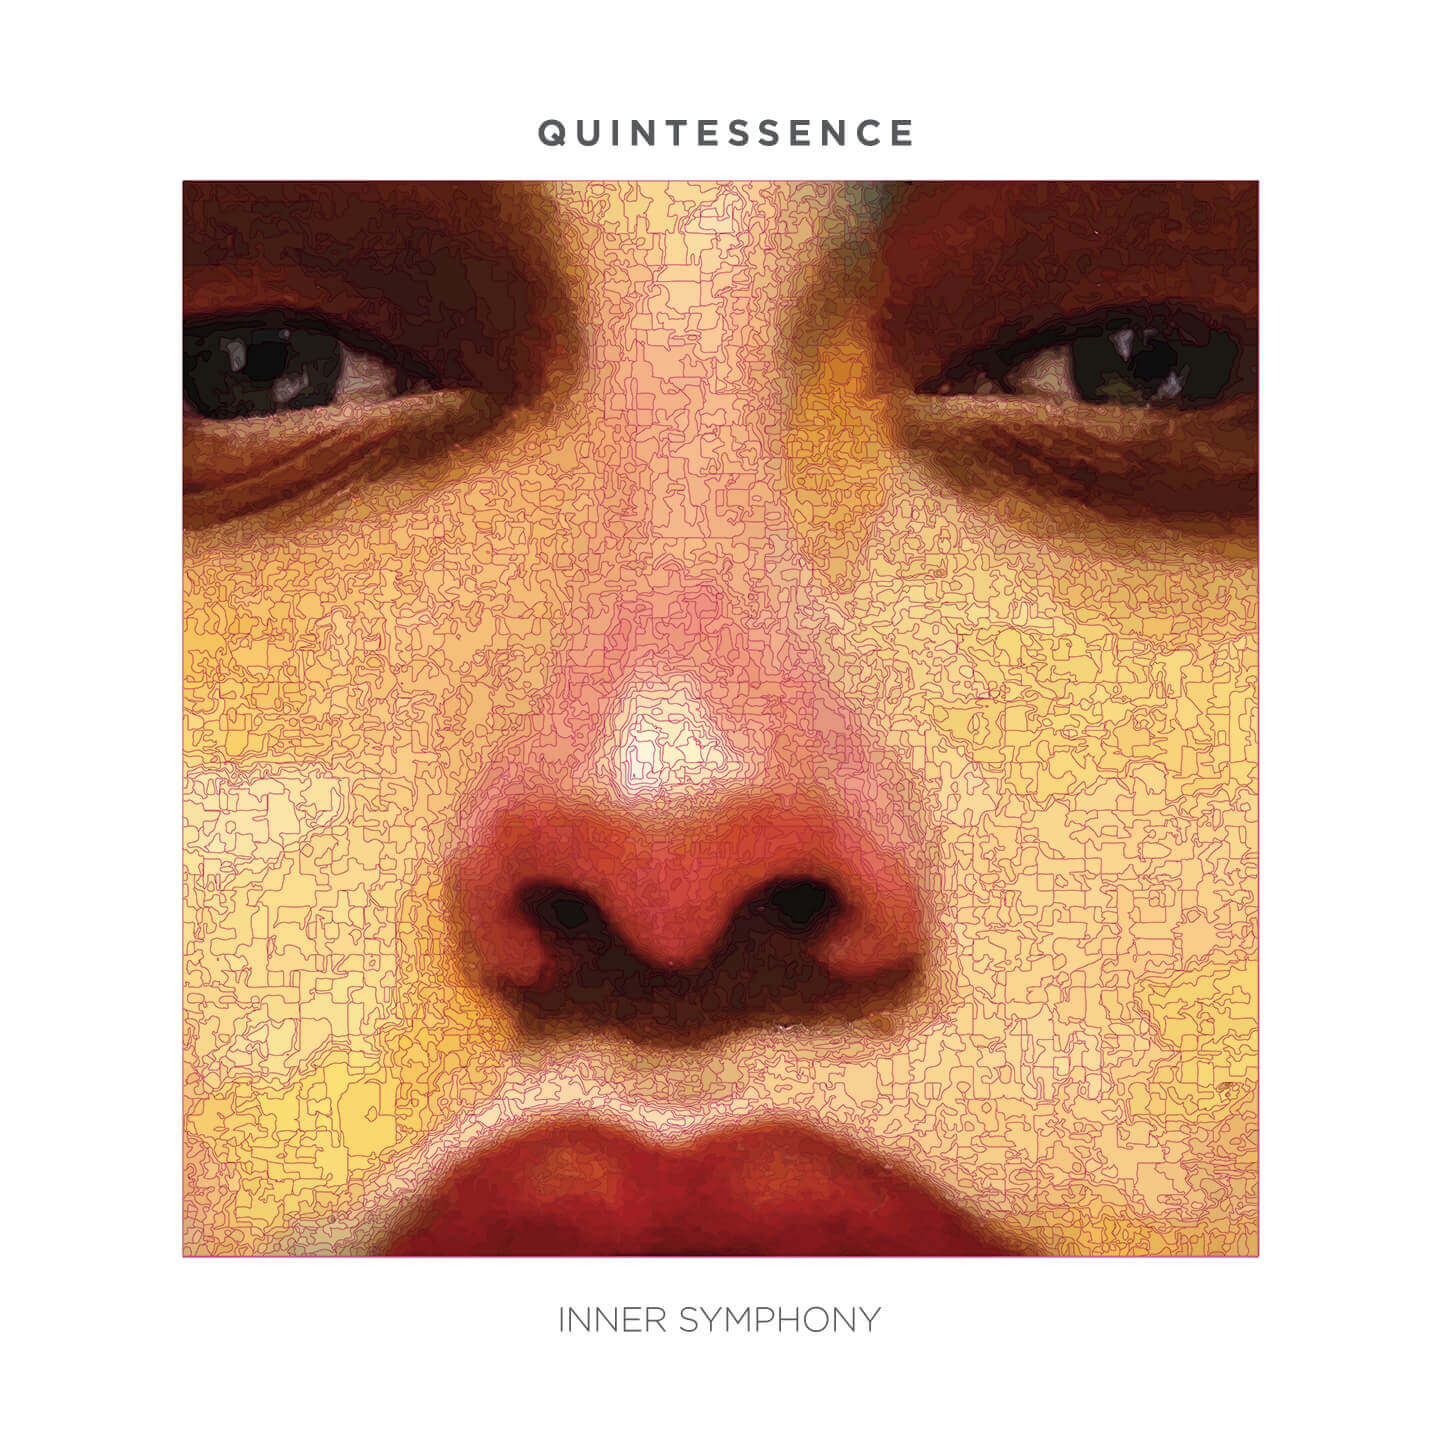 IS001_Inner Symphony Quintessence 01